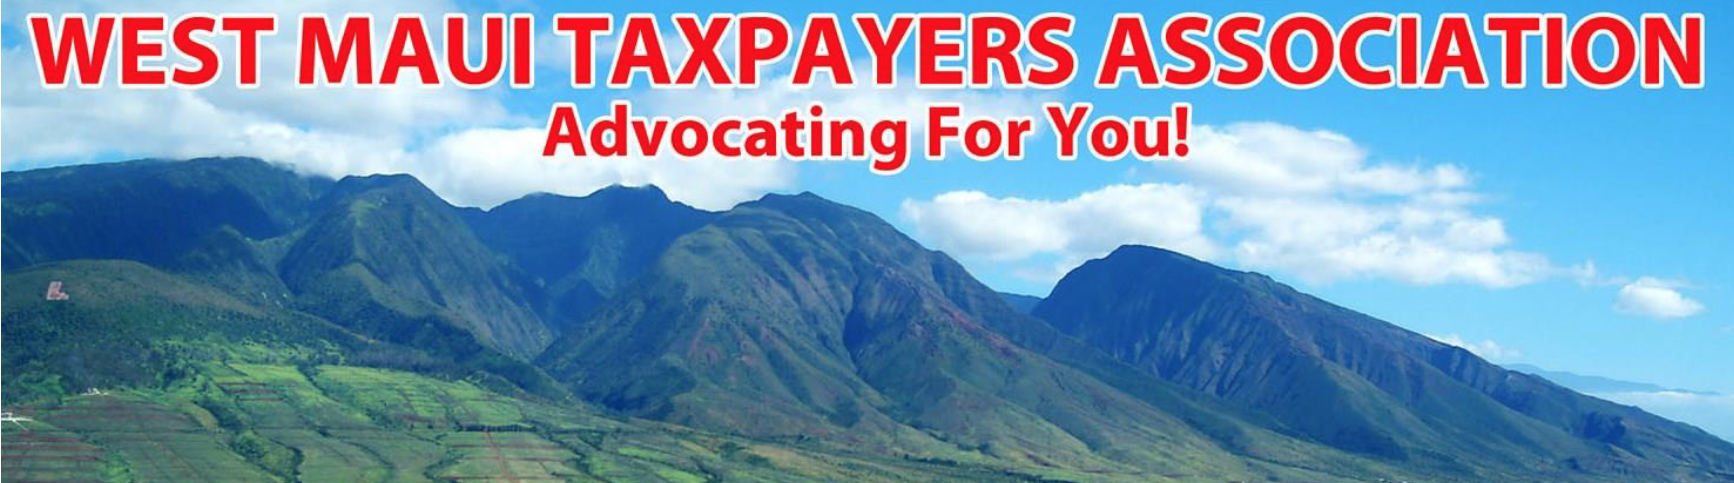 West Maui Taxpayers Association Holding Annual Meeting Jan. 7 Via Zoom